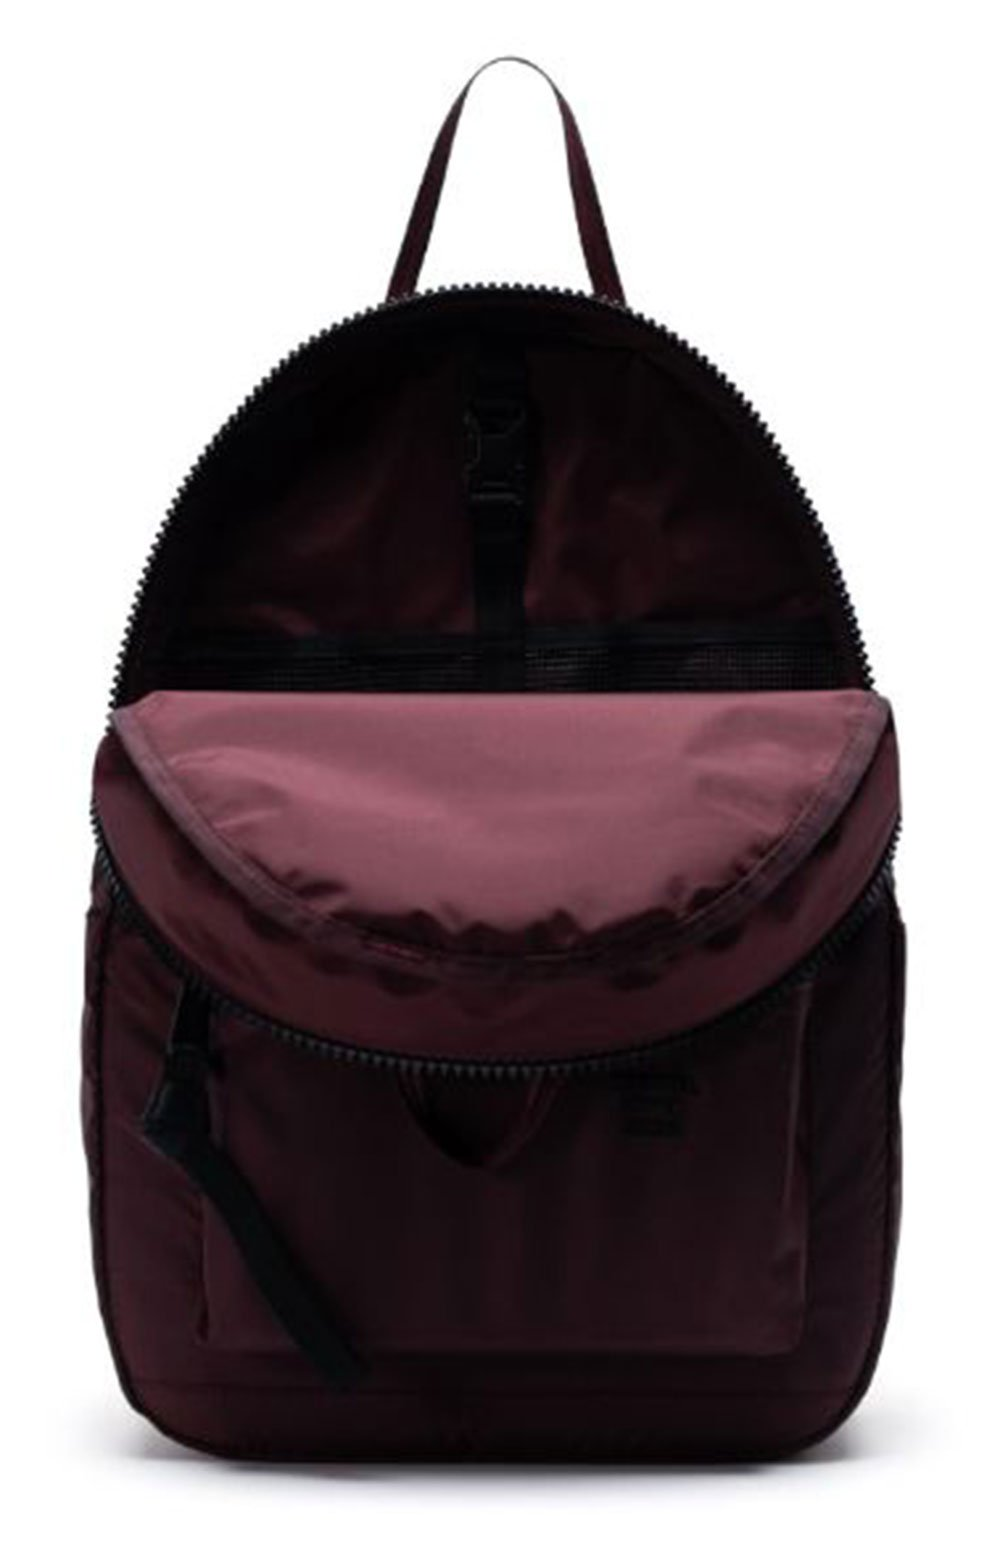 HS6 Backpack Studio - Plum/Black 2